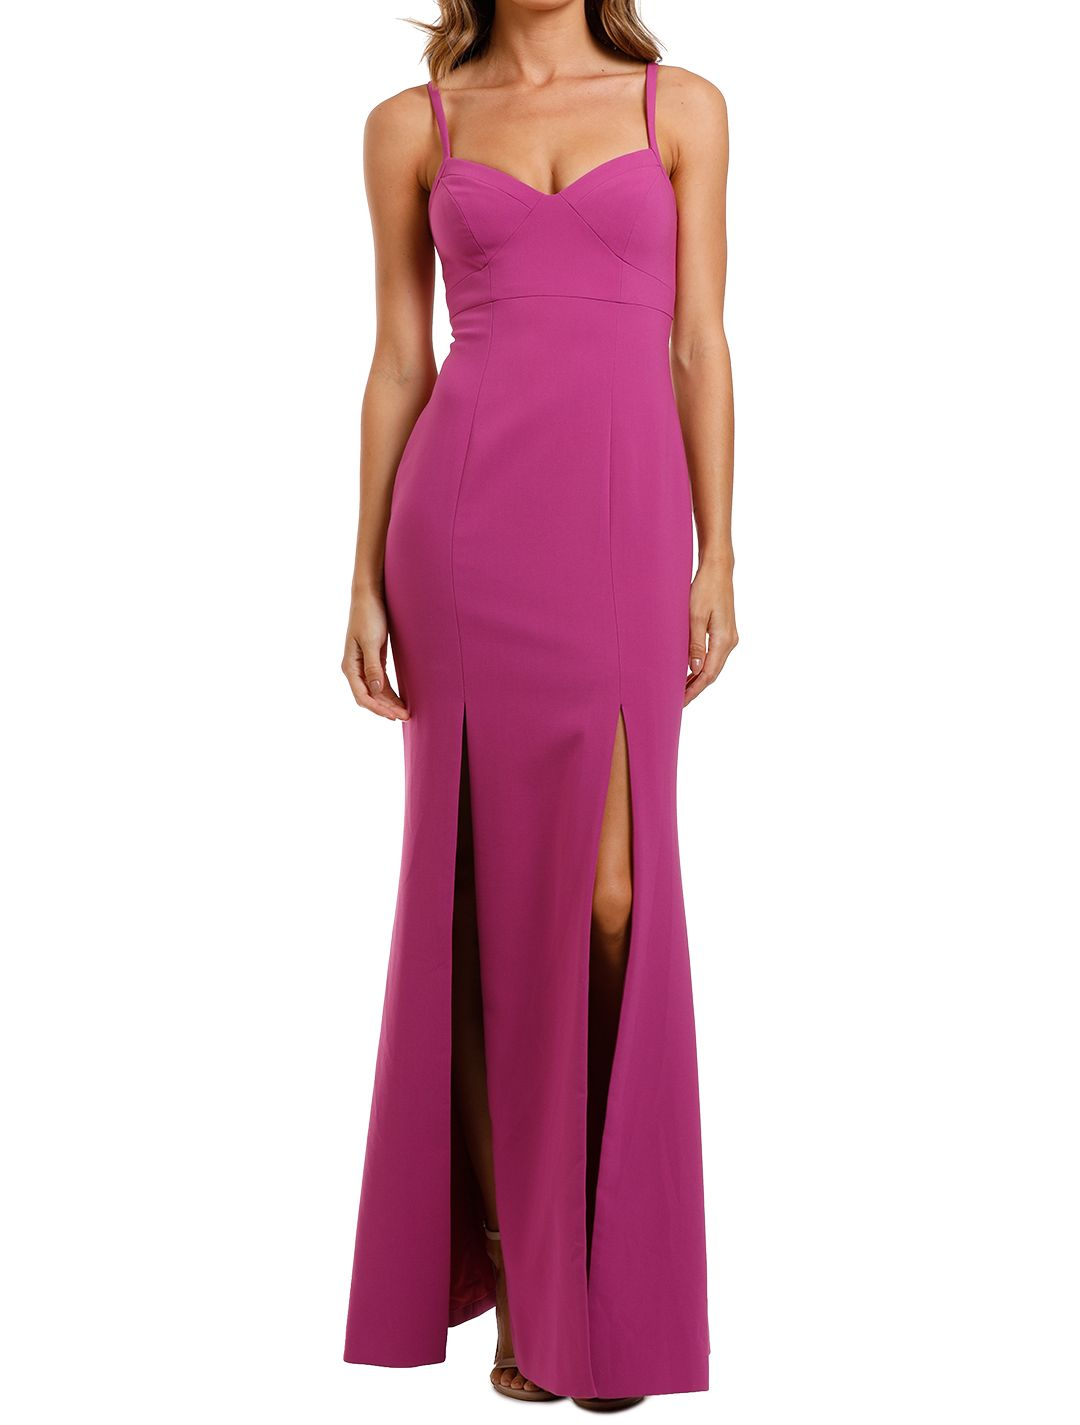 Likely NYC Alameda Gown Fuschia